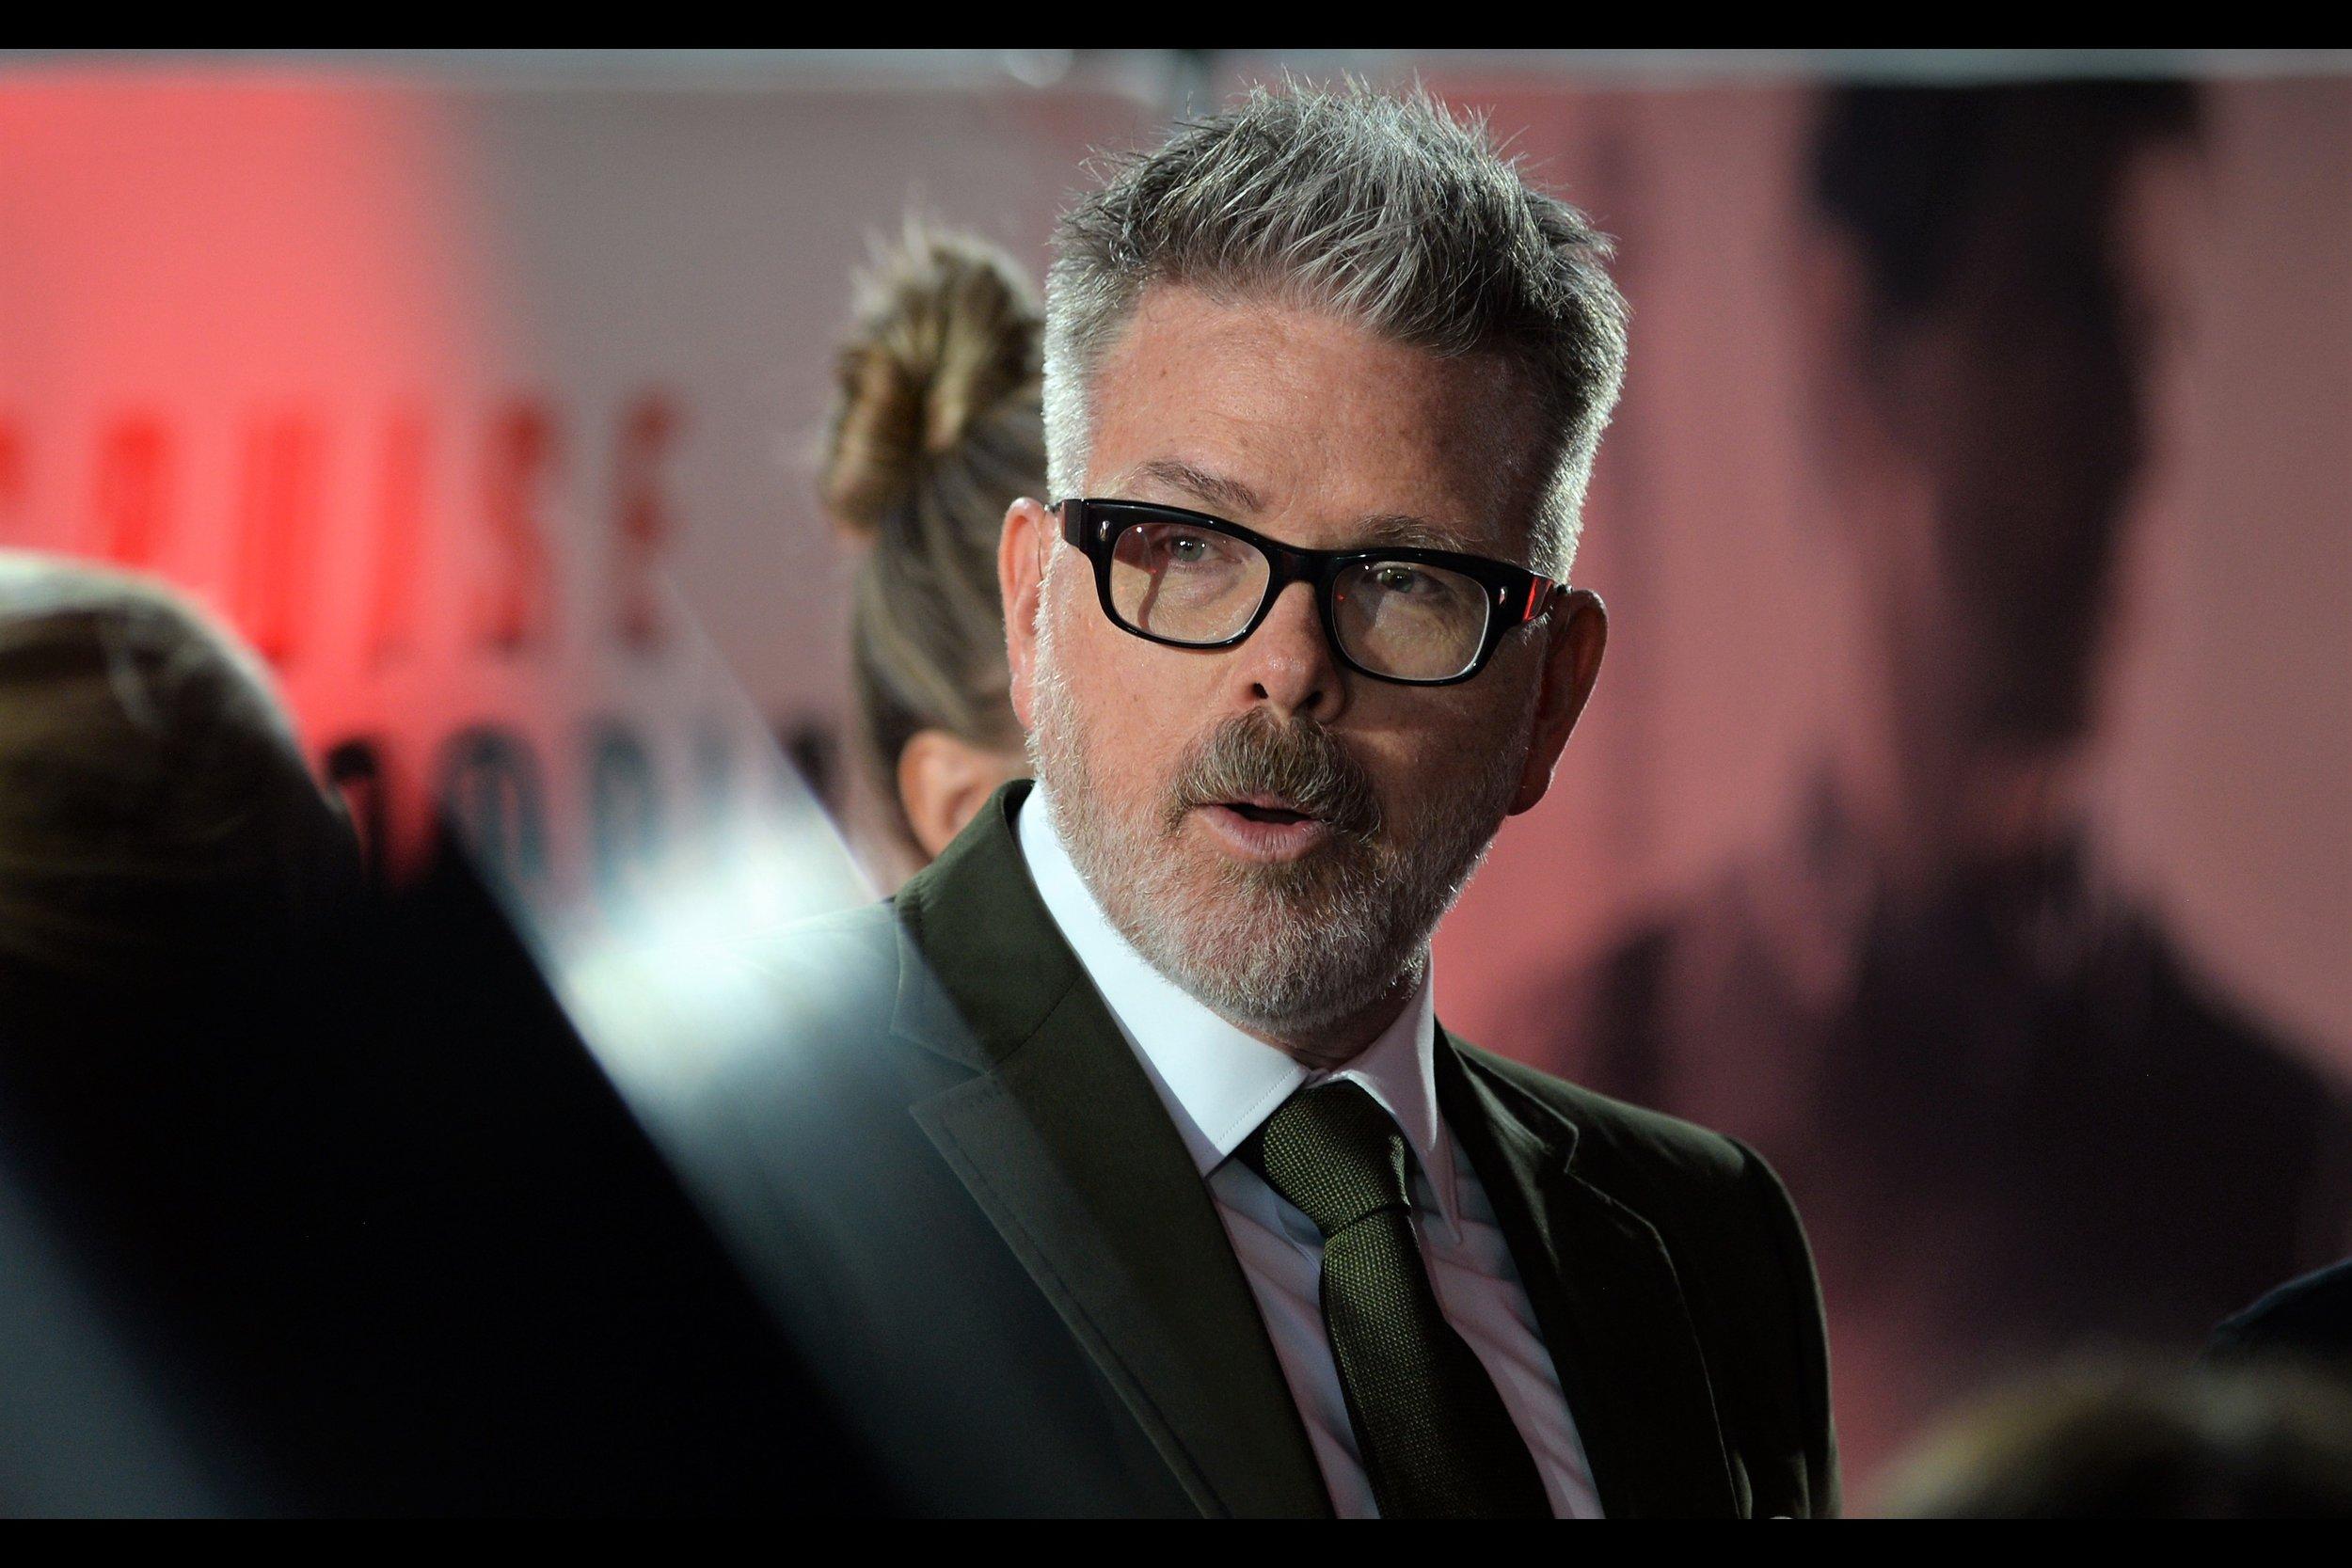 """""""You saw that on imdb? I dispute it""""  - according to imdb.com, director Christopher McQuarrie won both an Oscar and Bafta for writing 'The Usual Suspects (1995)', and was also one of SIX writers associated with """"The Mummy (2017)"""" a movie I'm still trying to forget. It gets easier every day... except on days when I have cause to remember  <reaches for the key to the alcohol cupboard>"""